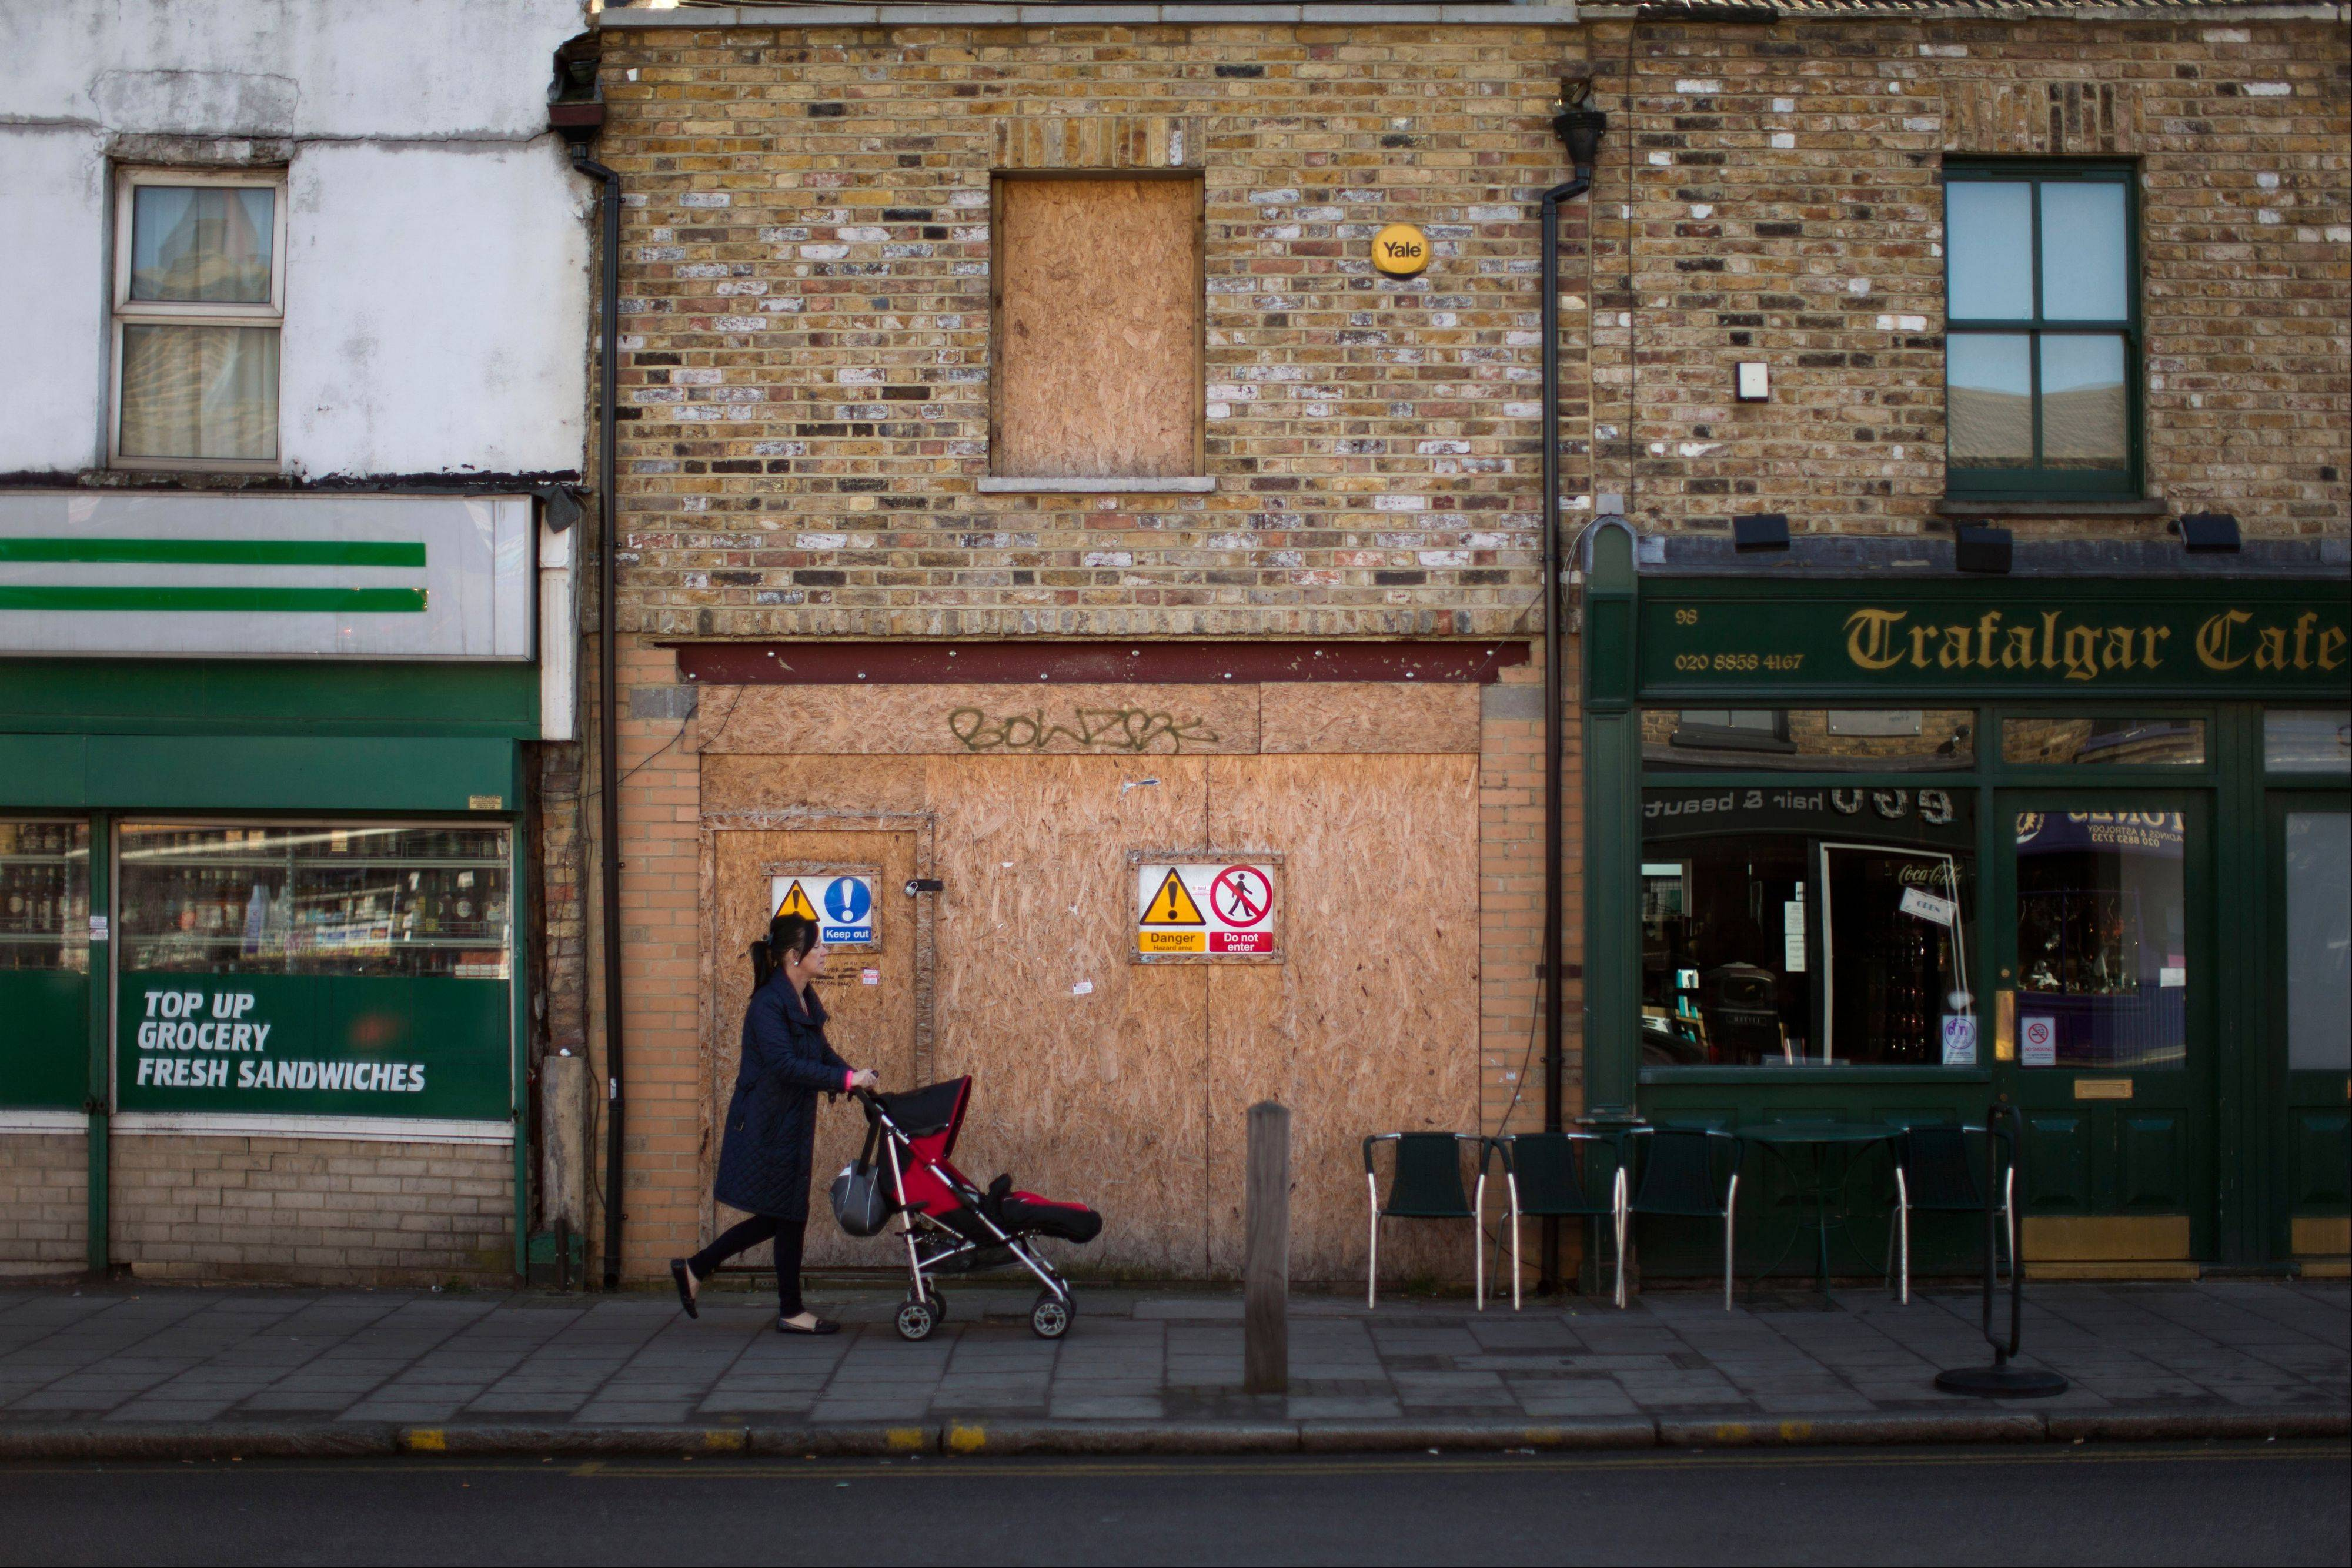 A woman pushes a child's buggy past a boarded up shop front on Trafalgar Road in Greenwich, London.